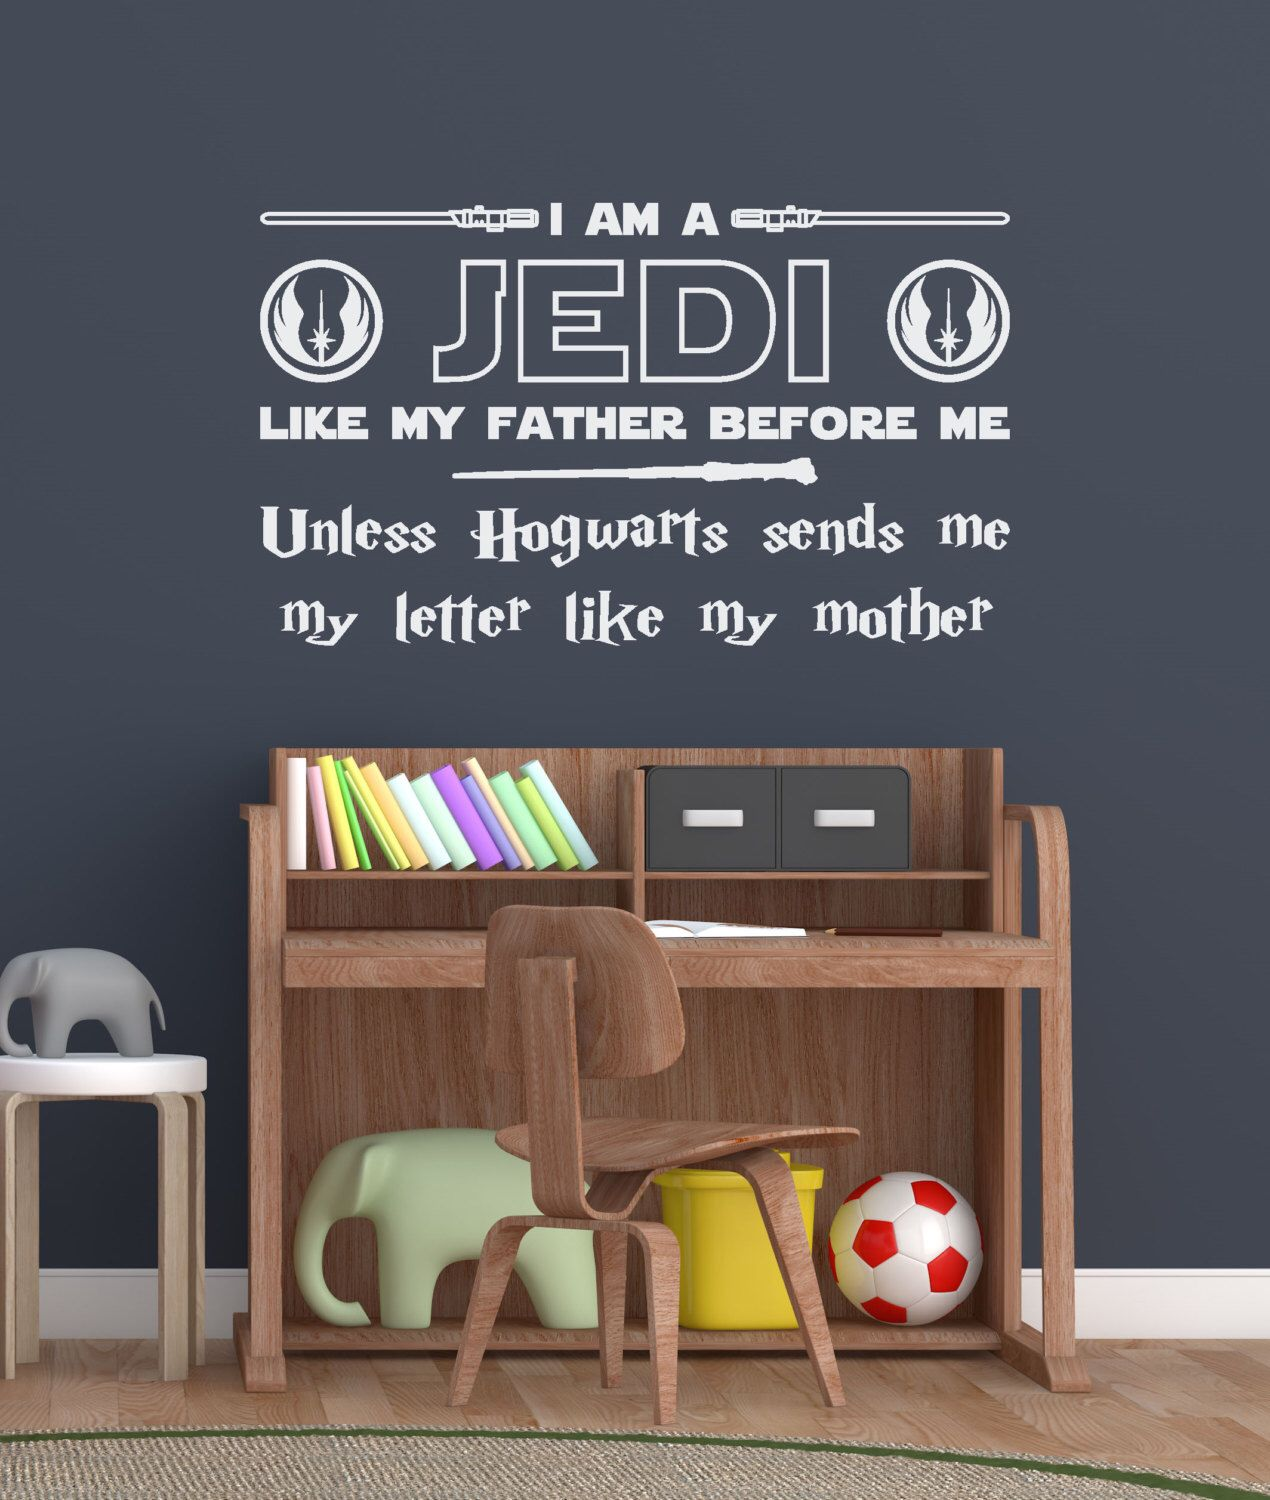 Star Wars Jedi Harry Potter Wall Decal Sticker I Am A Jedi Unless Hogwarts  Sends Me